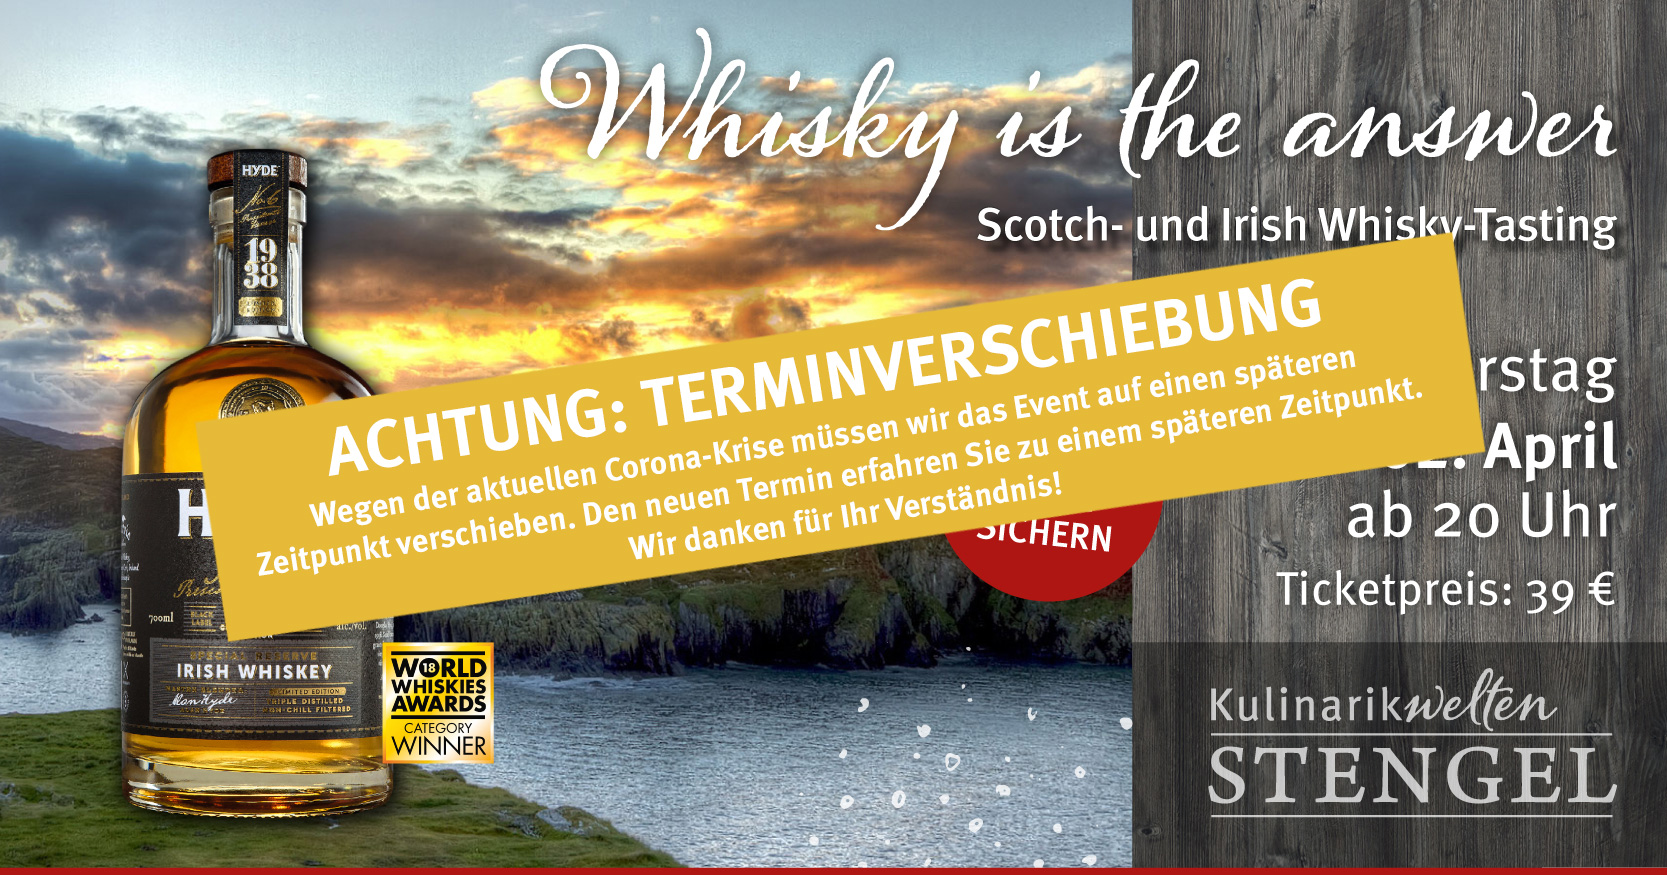 Whiskytasting am 2. April 2020 in den Kulinarikwelten E-Center Stengel